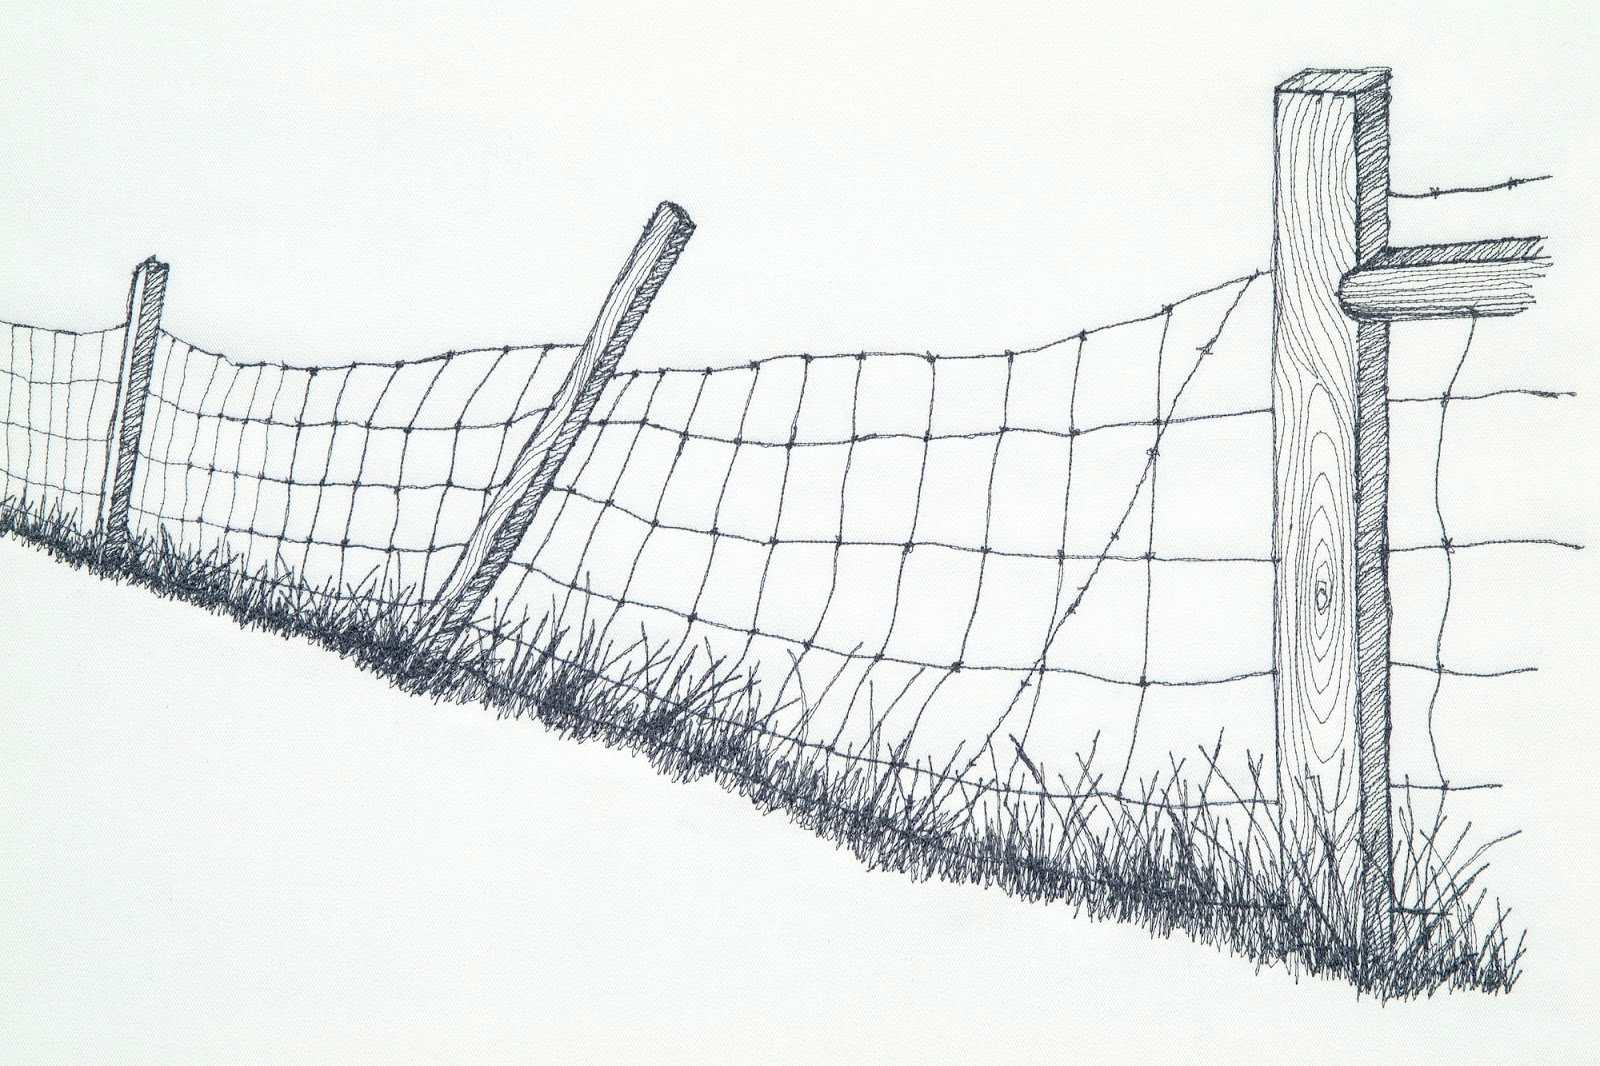 B. J. Adams Small Art Work: Barbed Wire now traveling to